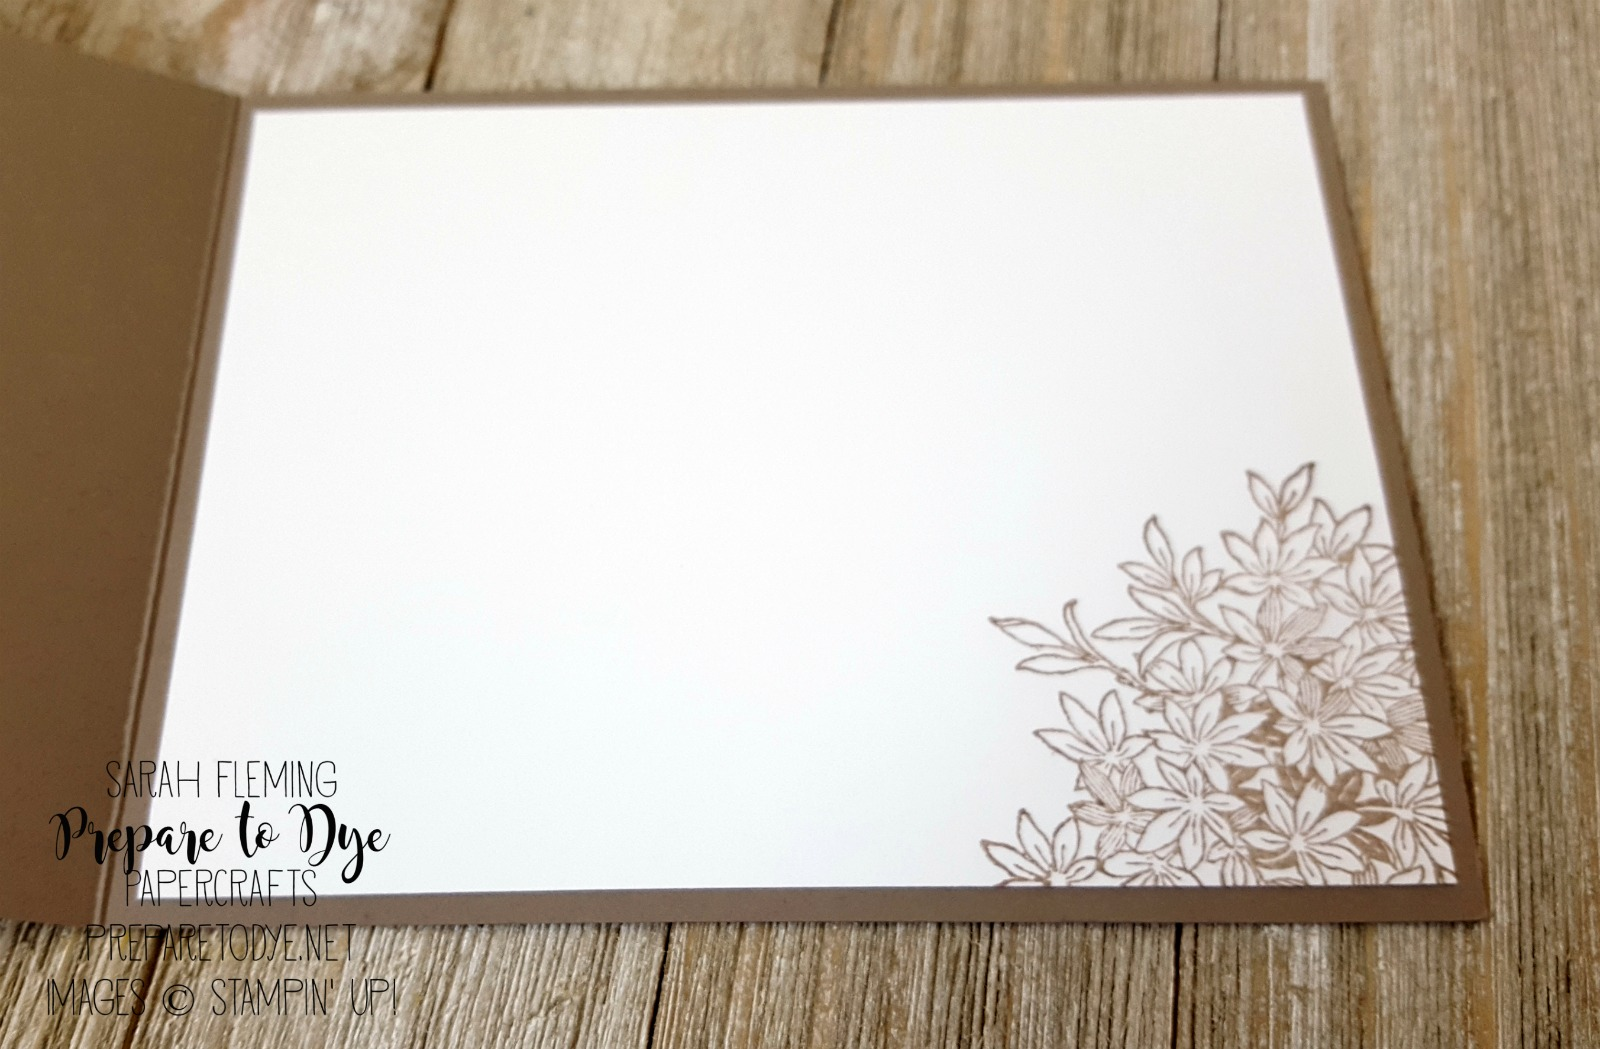 Stampin' Up! Awesomely Artistic - Sarah Fleming - Prepare to Dye Papercrafts